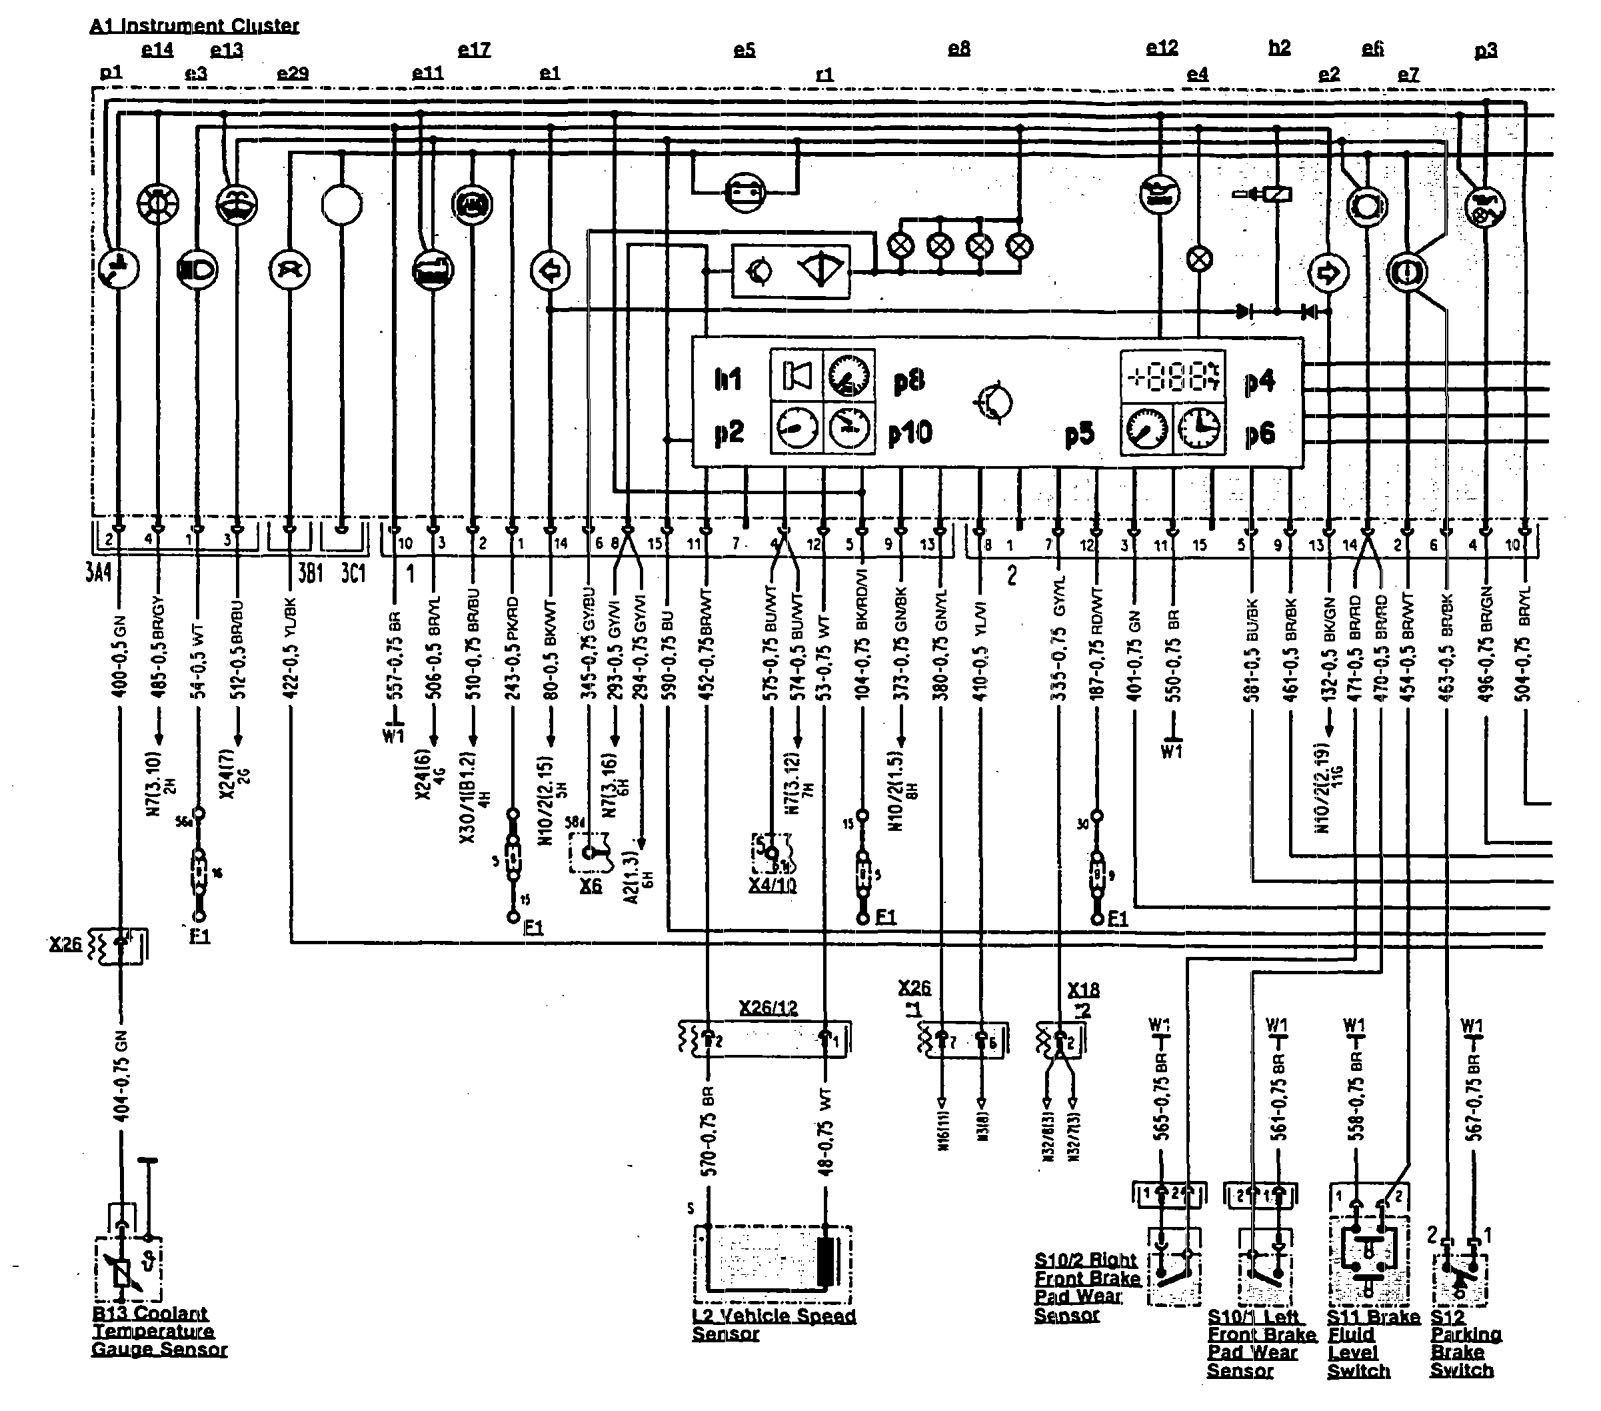 Wiring Diagram Info Fuse Box Bmw 325i 1993 Diagrams Acura Integra 1987 Convertible Auto Lexus Gs300